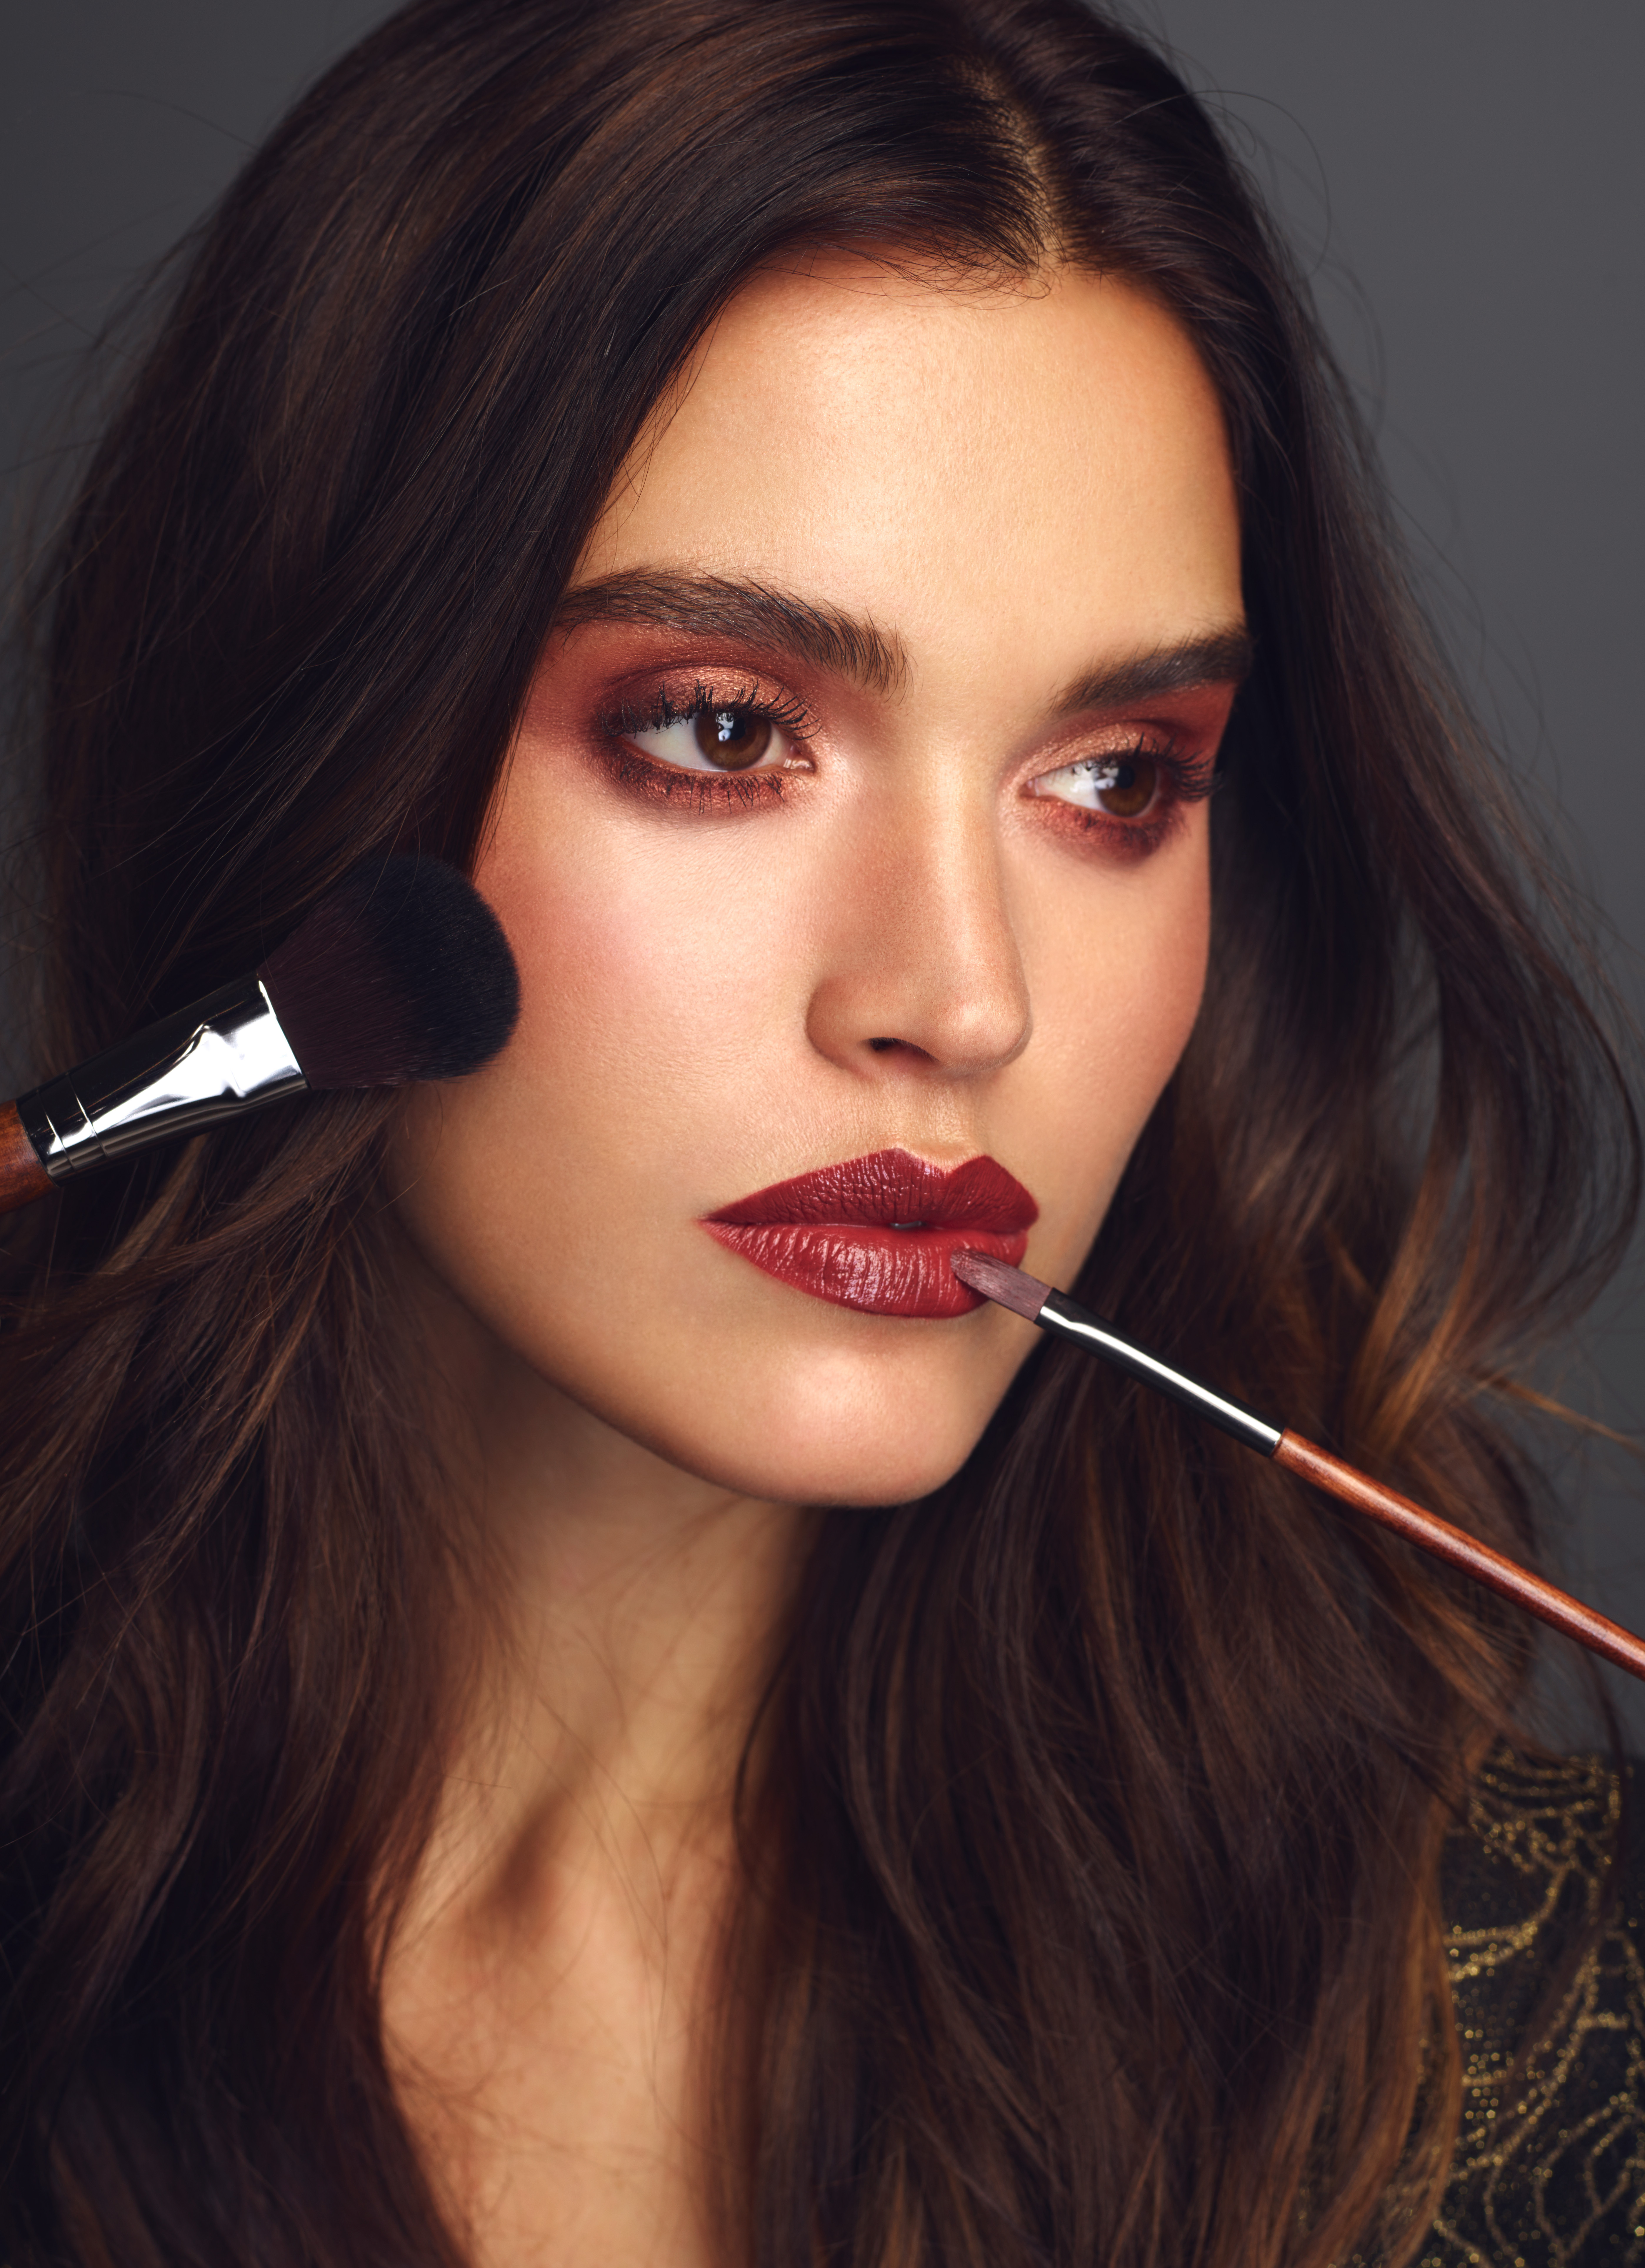 Brushes Beauty Editorial for DTK